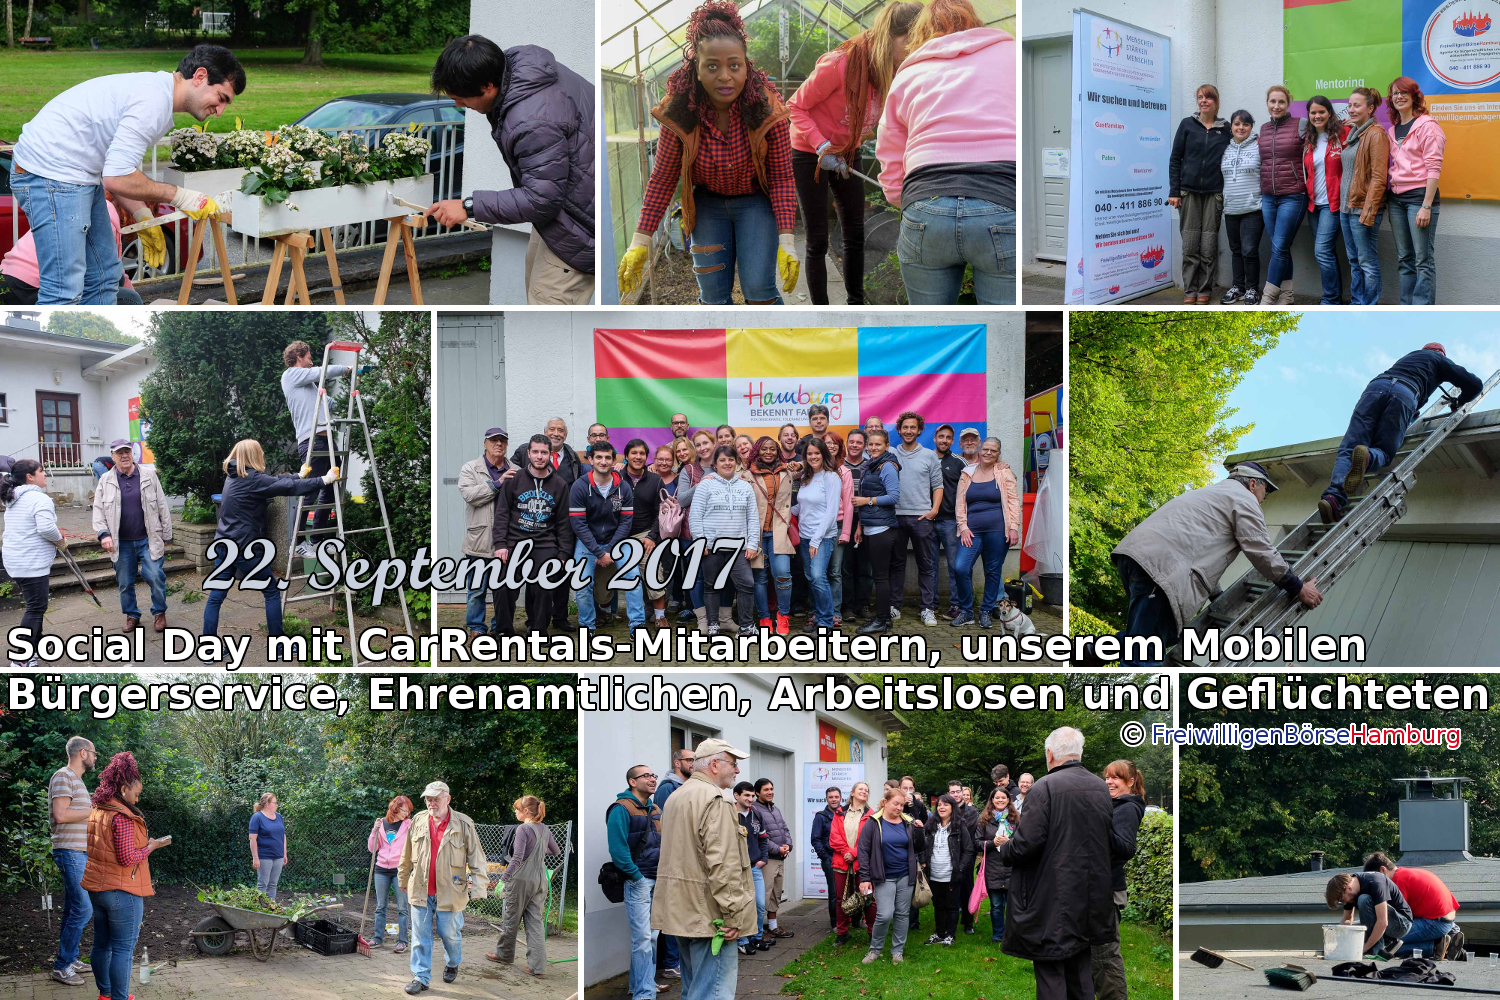 Impressionen vom Social Day am 22. September 2017